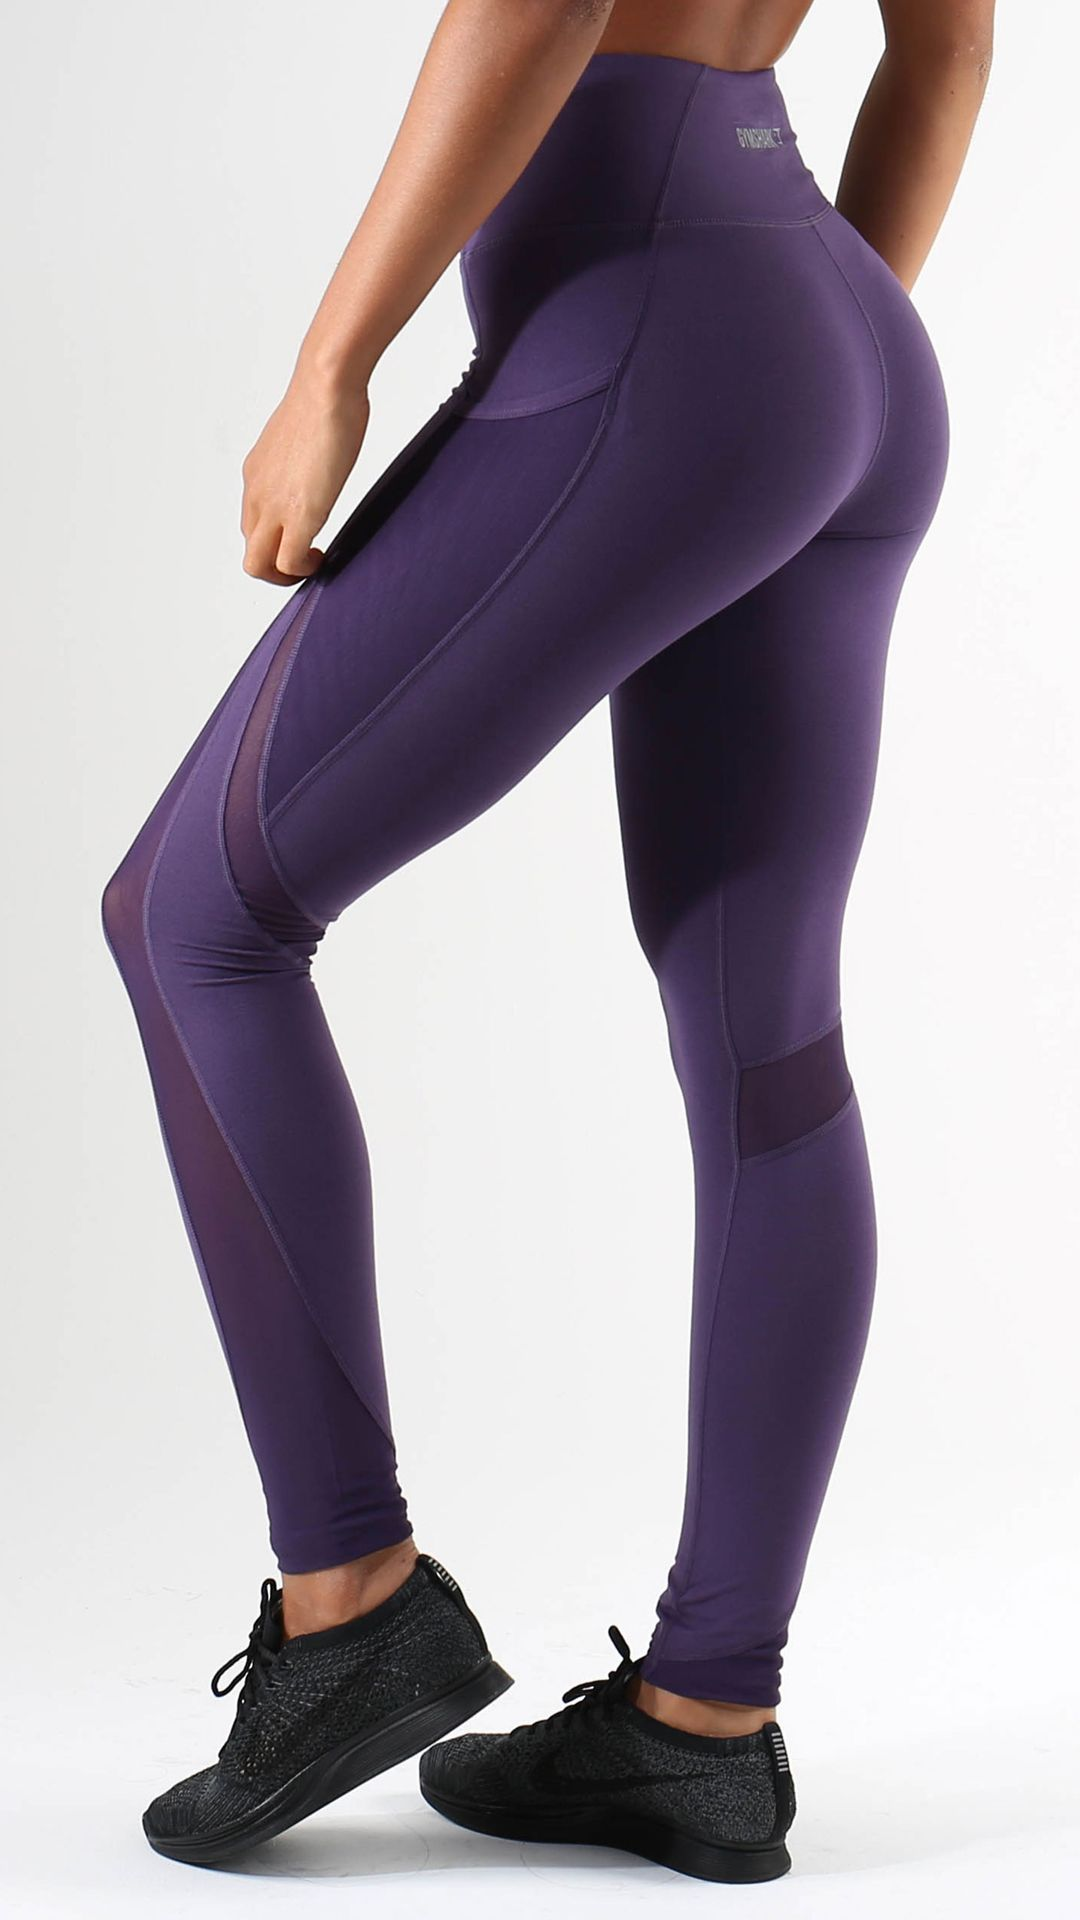 7a753f1db8f882 The Sleek Sculpture Leggings are back and better than ever before. Ready to  give you the coolest, most comfortable workout.